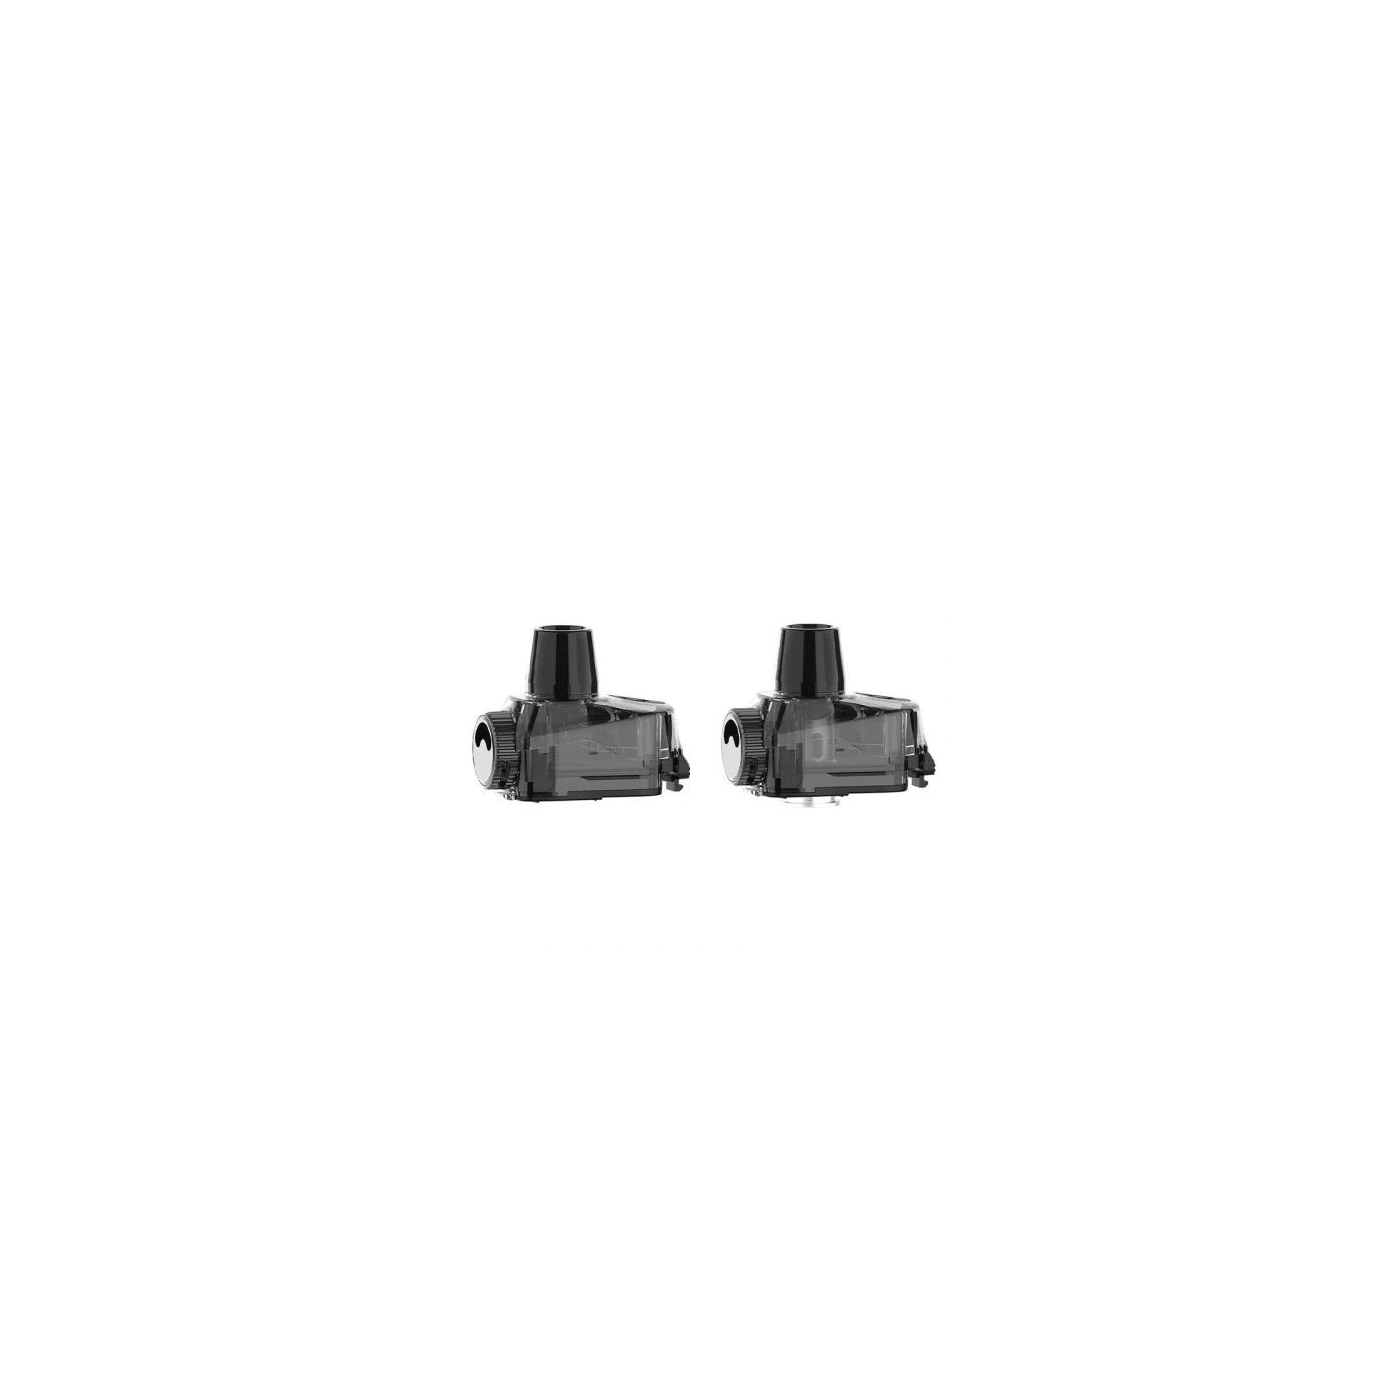 Geekvape Aegis Boost Pro Replacement Pod/Coil - 2 Pack